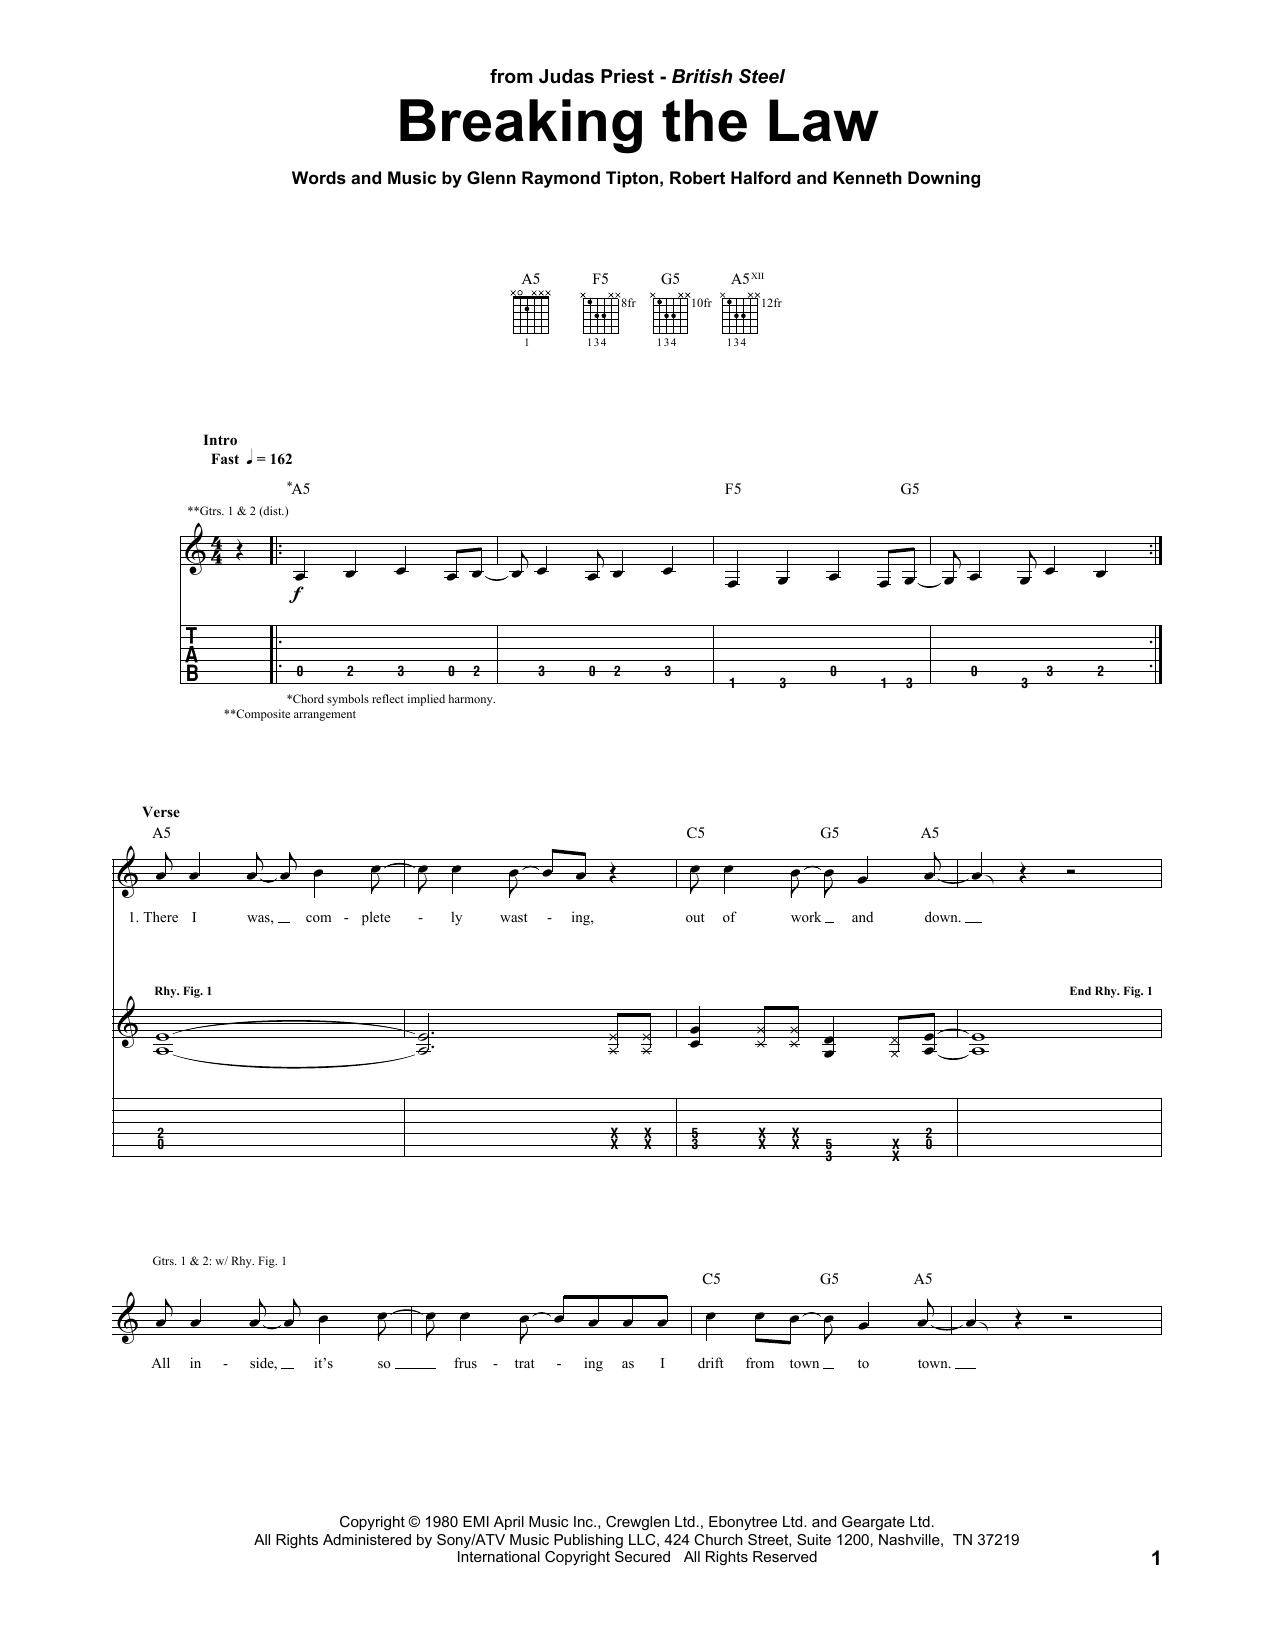 Judas Priest Breaking The Law sheet music notes and chords. Download Printable PDF.